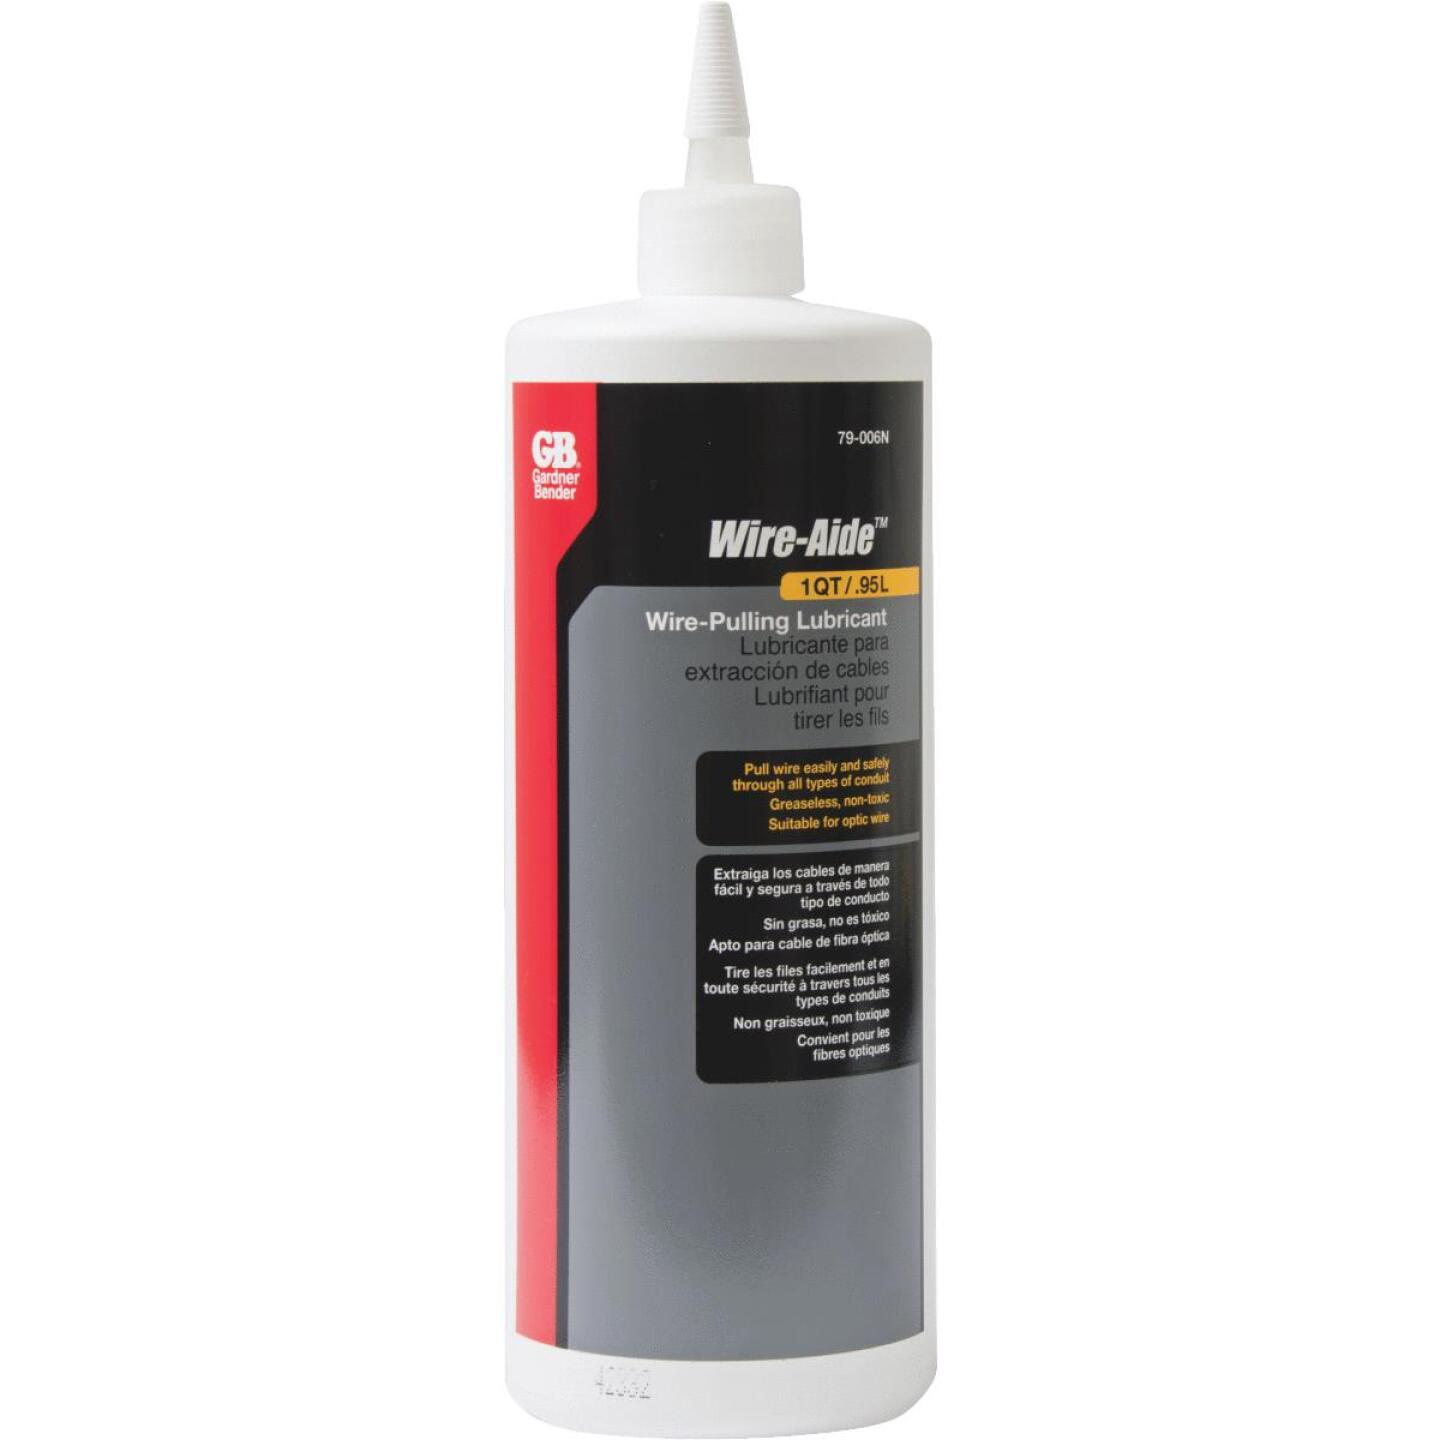 Gardner Bender Wire-Aide 1 Qt. Wire Pulling Lubricant Image 1